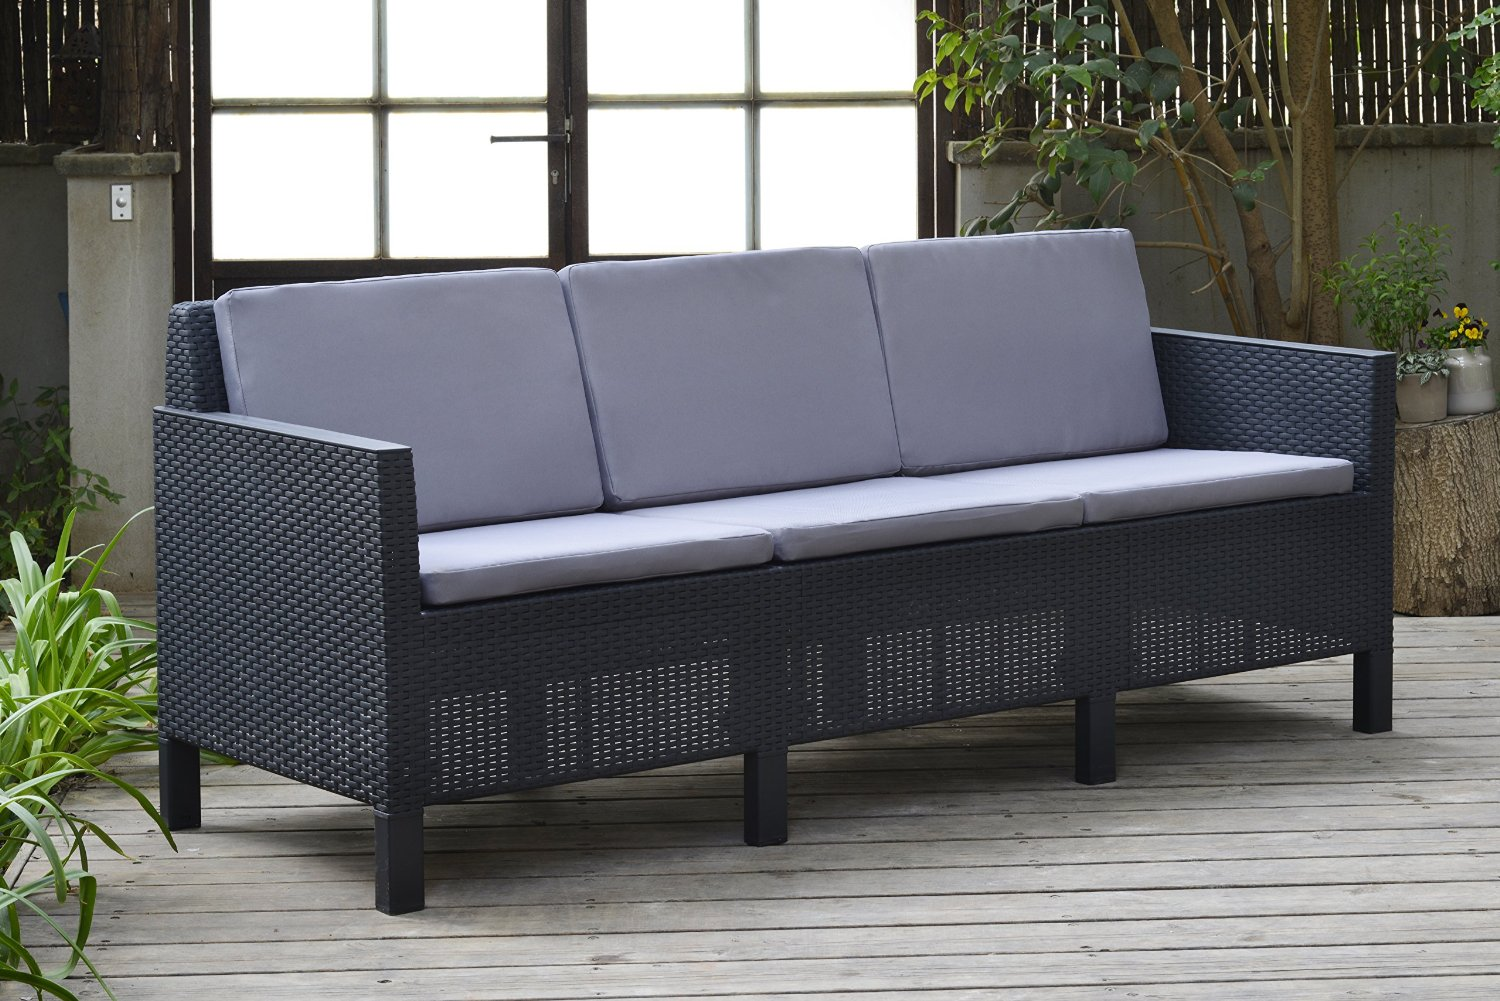 allibert chicago 5 seater lounge set with grey cushions 3 years guarantee uk. Black Bedroom Furniture Sets. Home Design Ideas